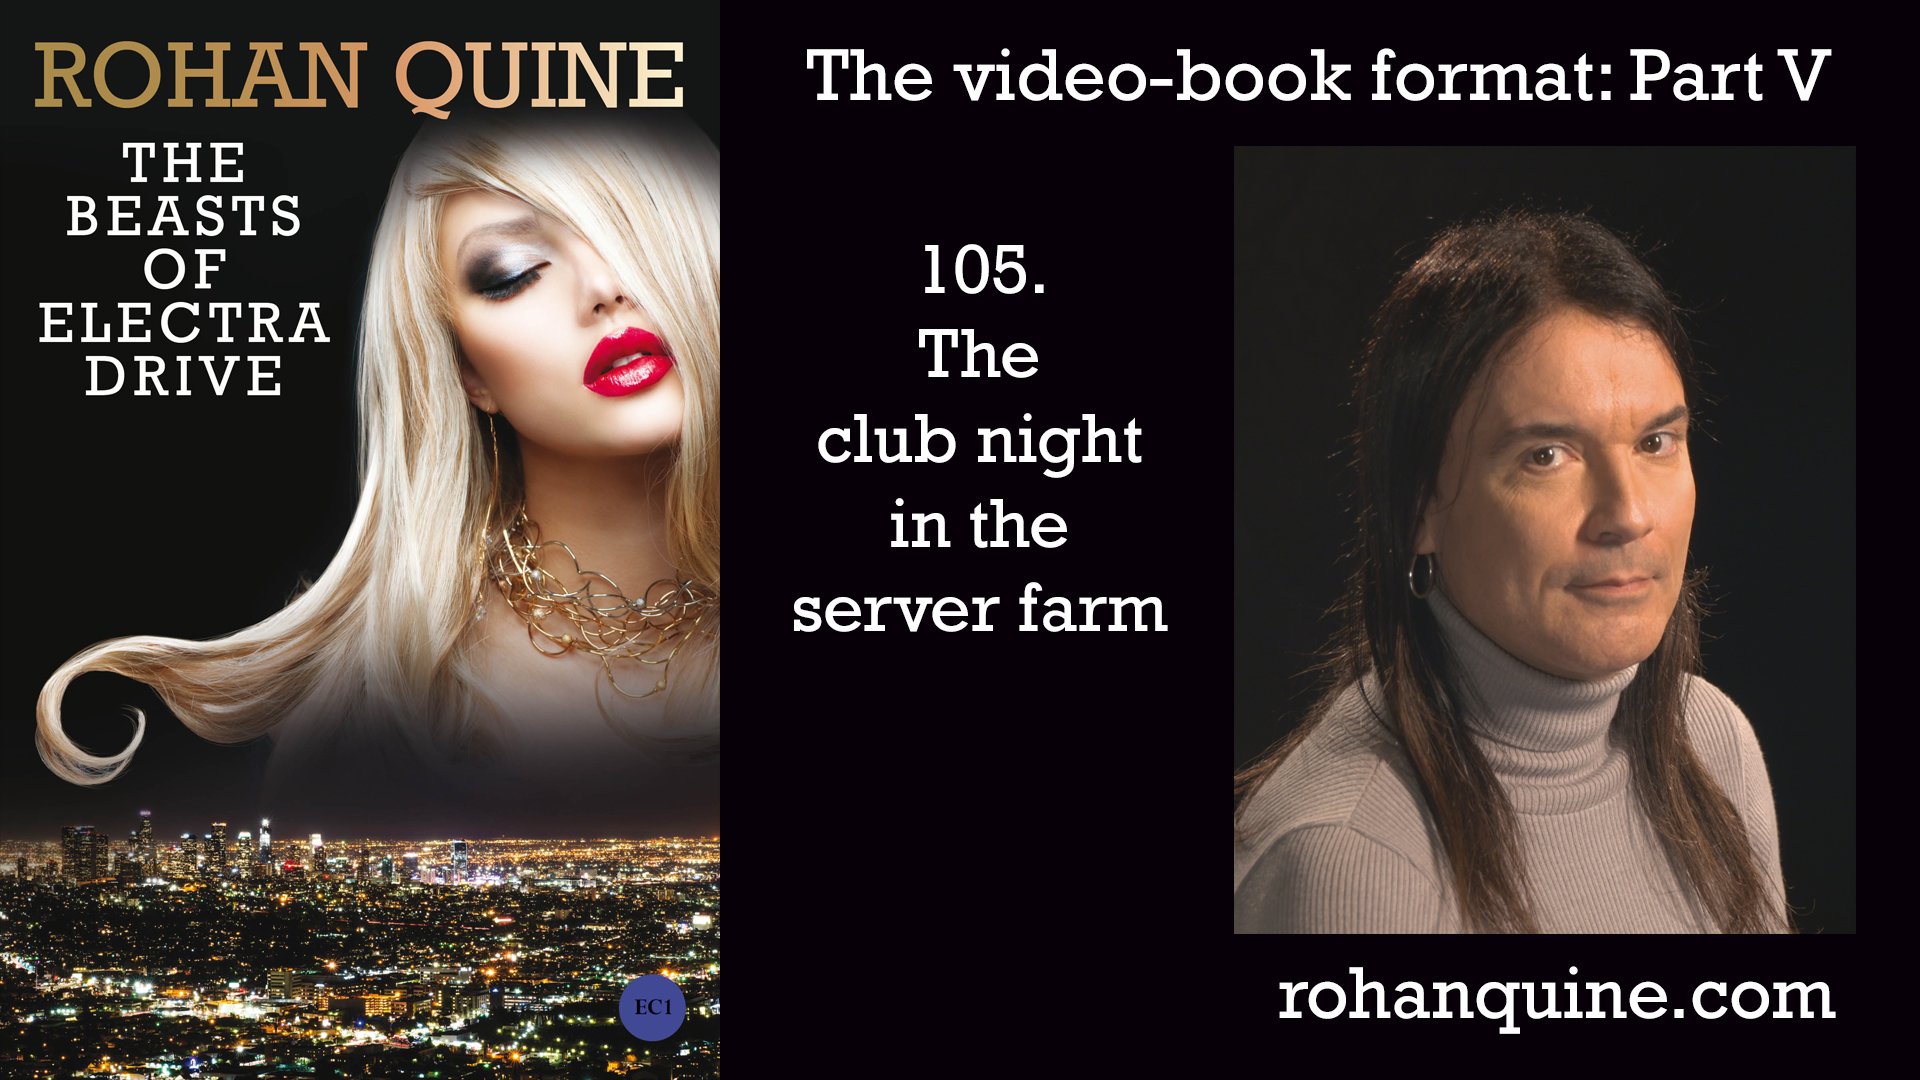 THE BEASTS OF ELECTRA DRIVE by Rohan Quine - video-book format - mini-chapter 105